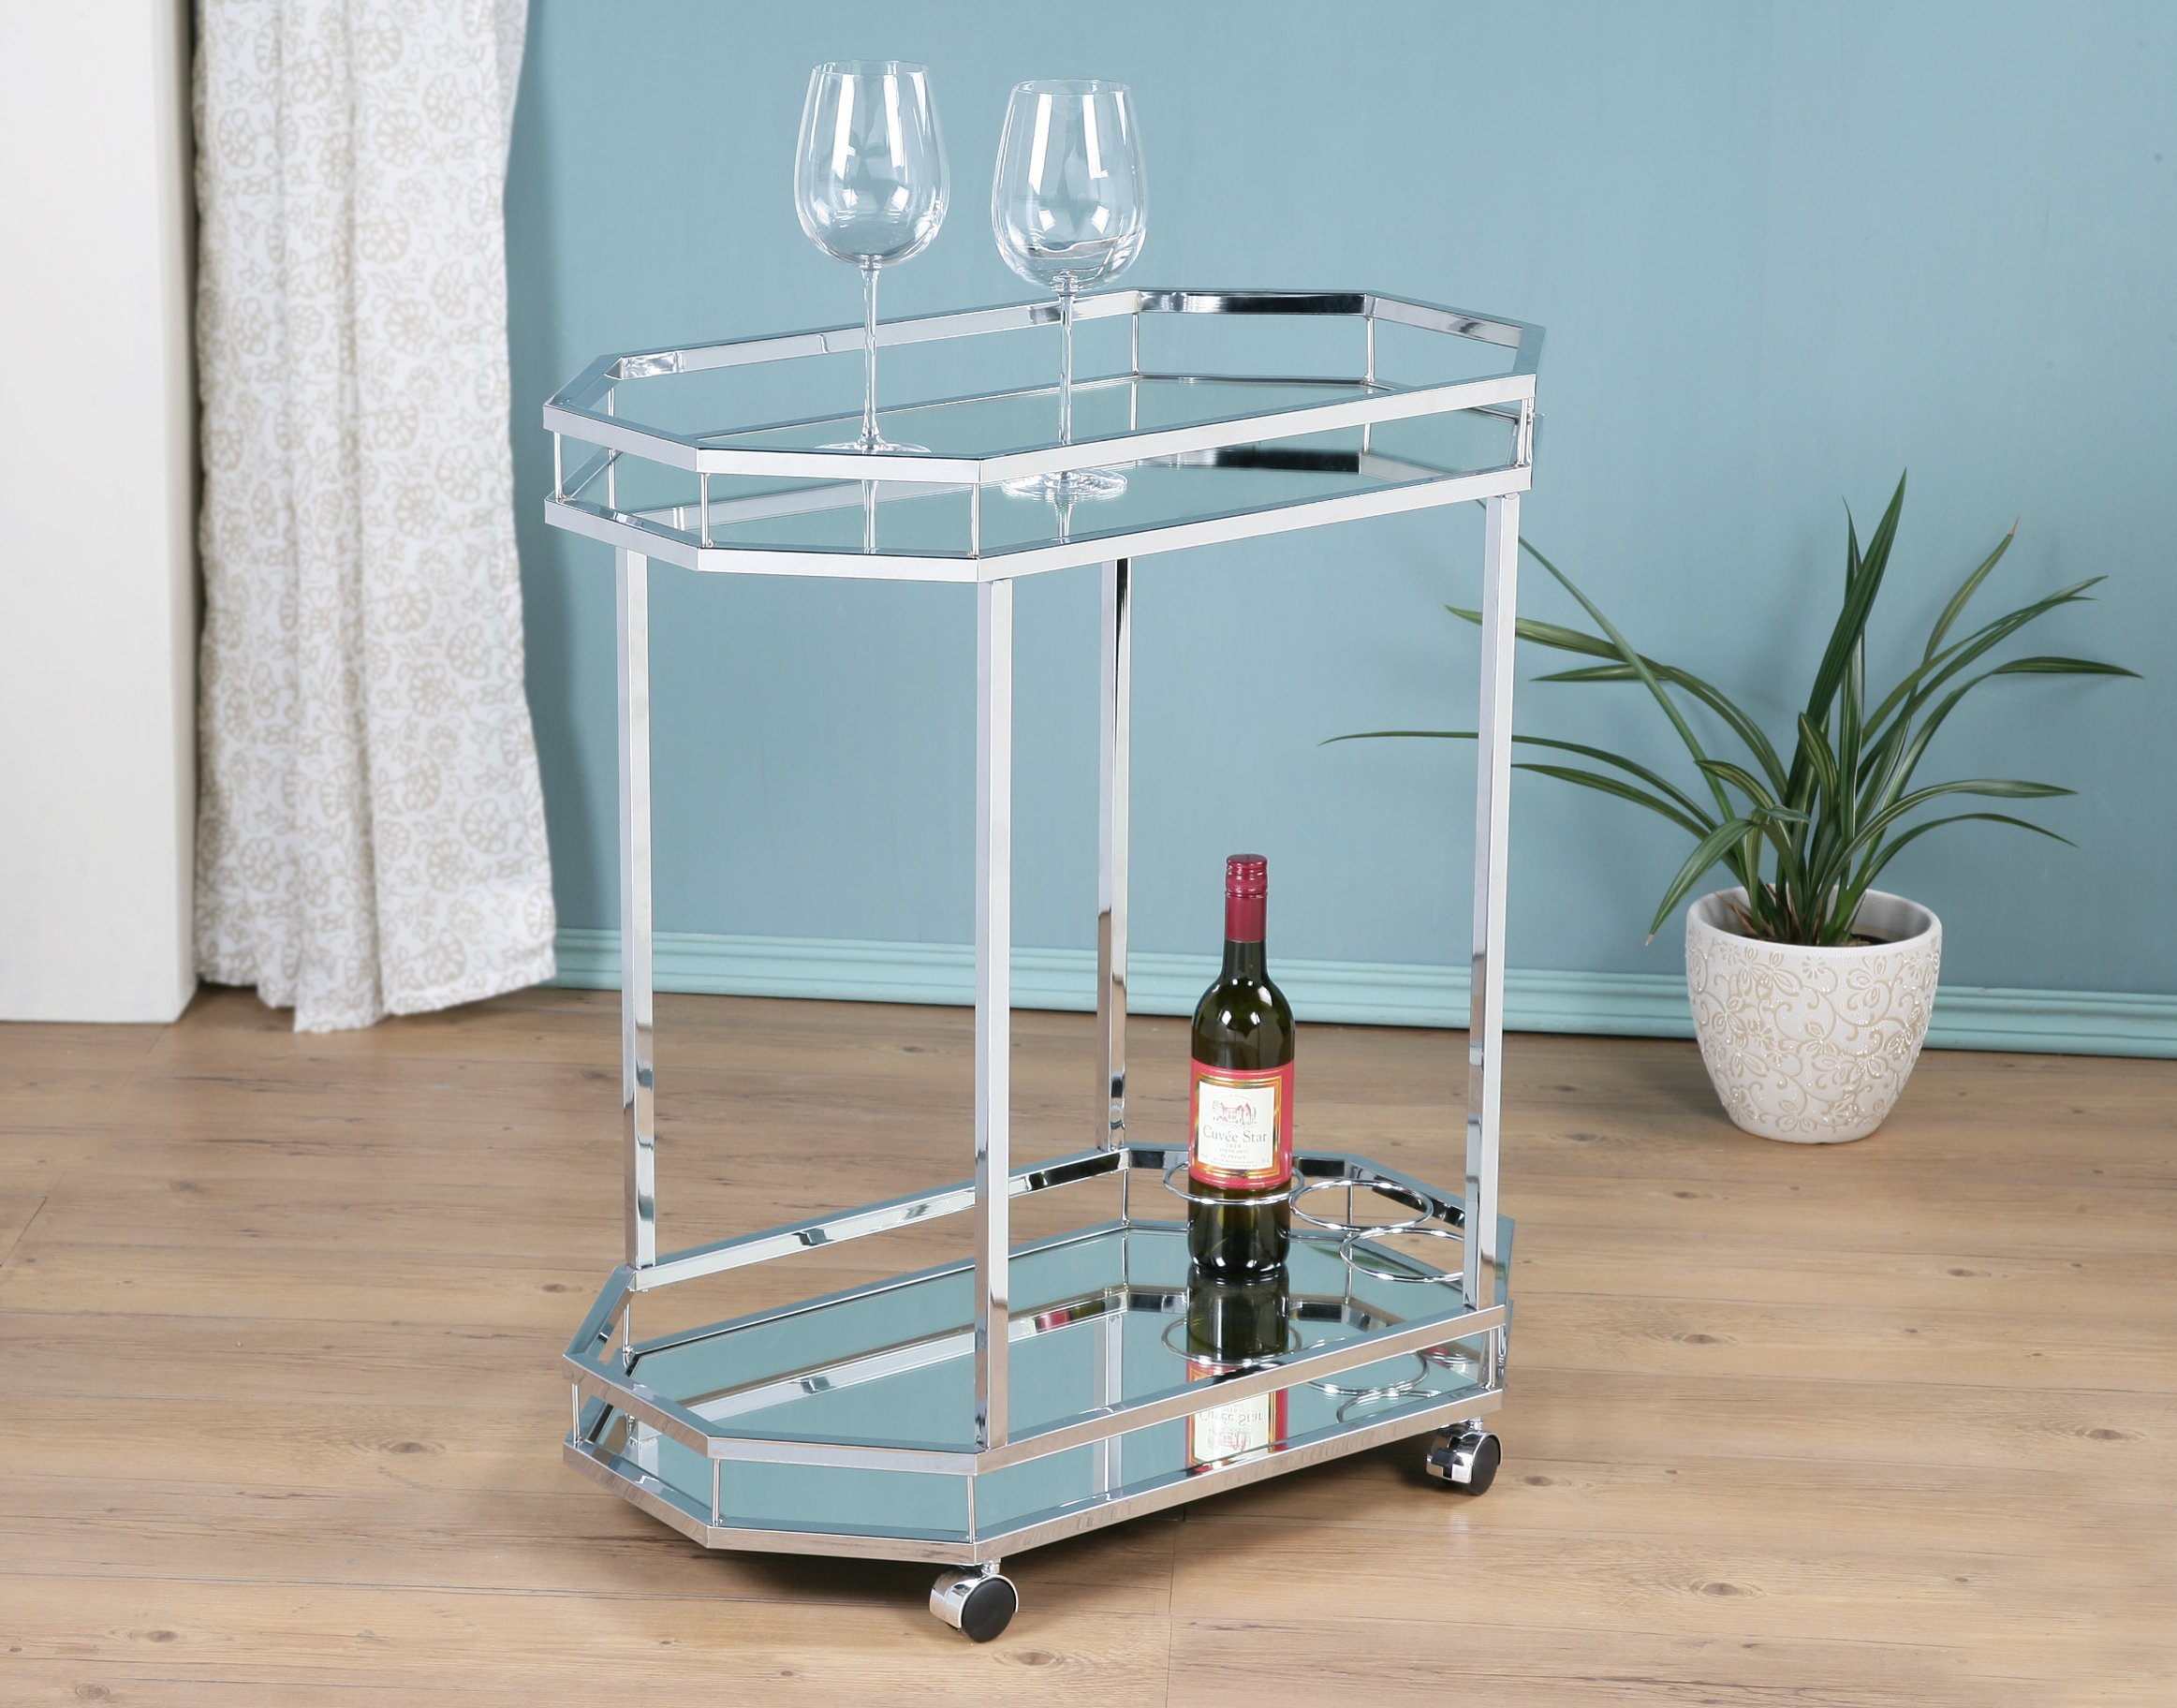 Chrome Metal Bar Tea Wine Bottle Holder Serving Cart With Tempered Glass Top / Mirror Bottom by GiniHomer